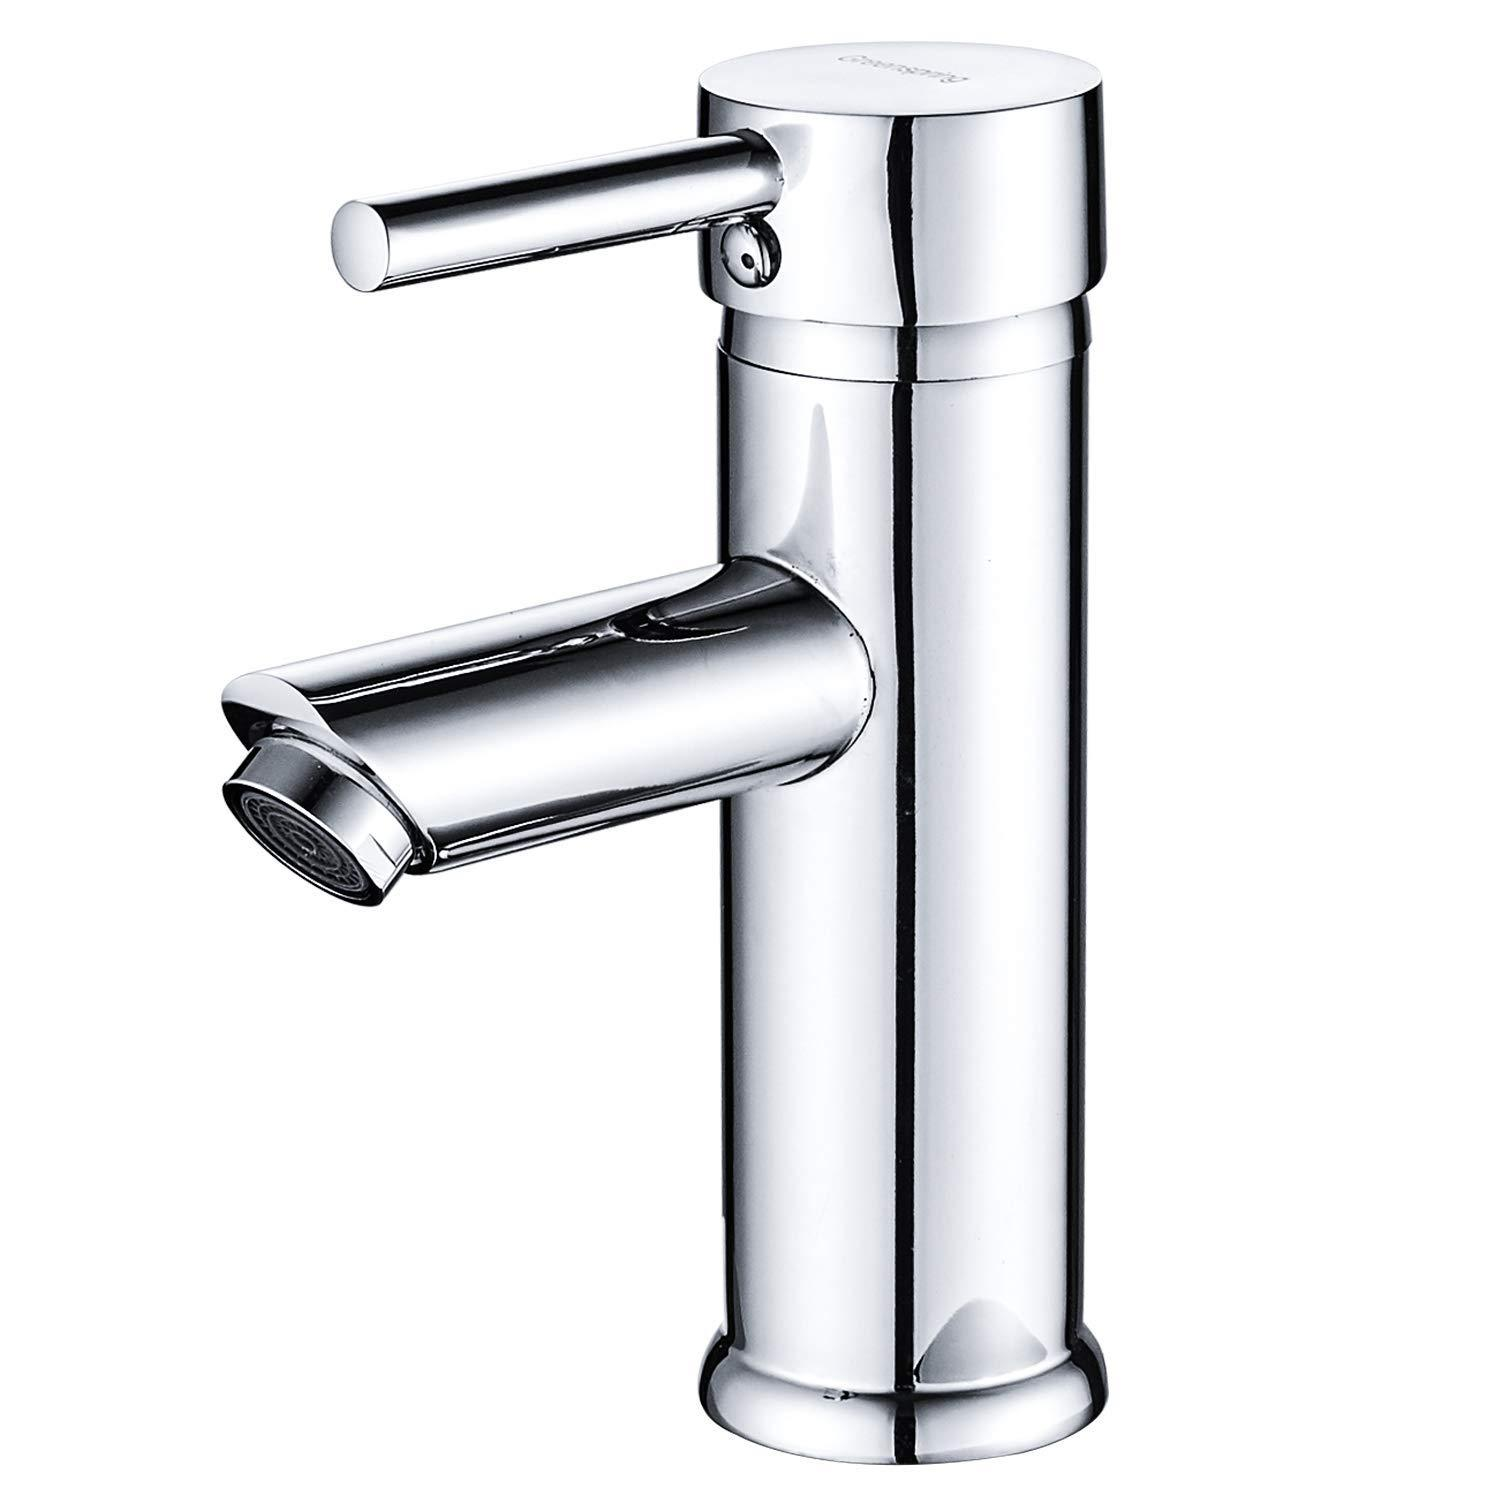 greenspring commercial single handle bathroom sink faucet one hole deck mount lavatory faucet stainless steel chrome finish